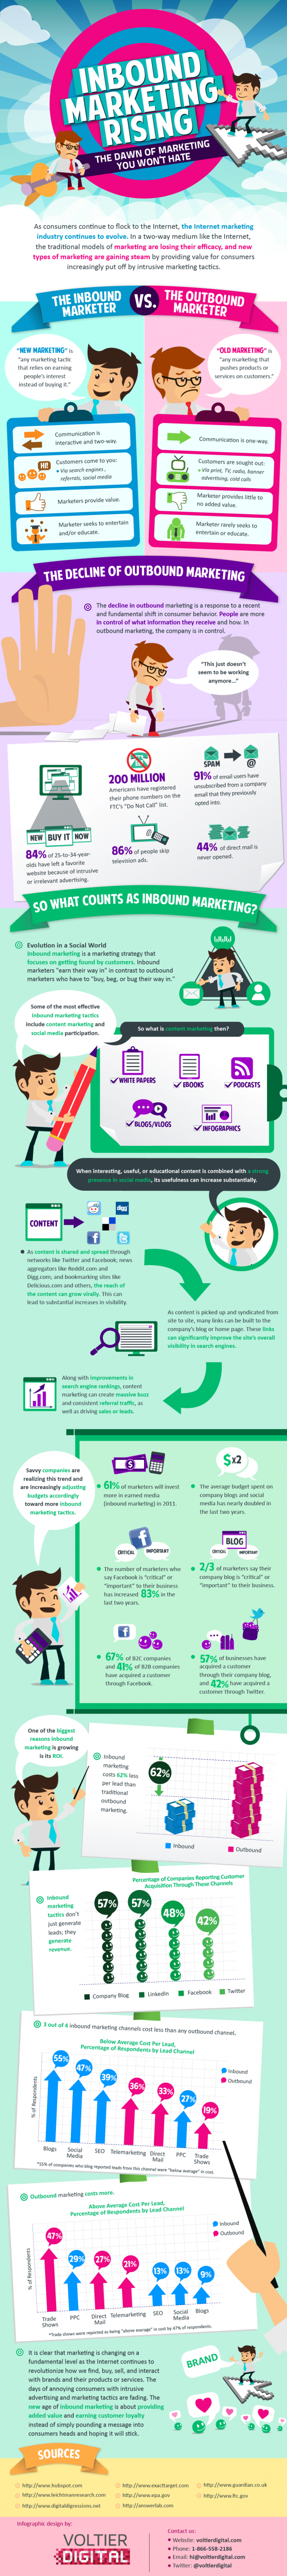 Why inbound marketing is taking over #infographic